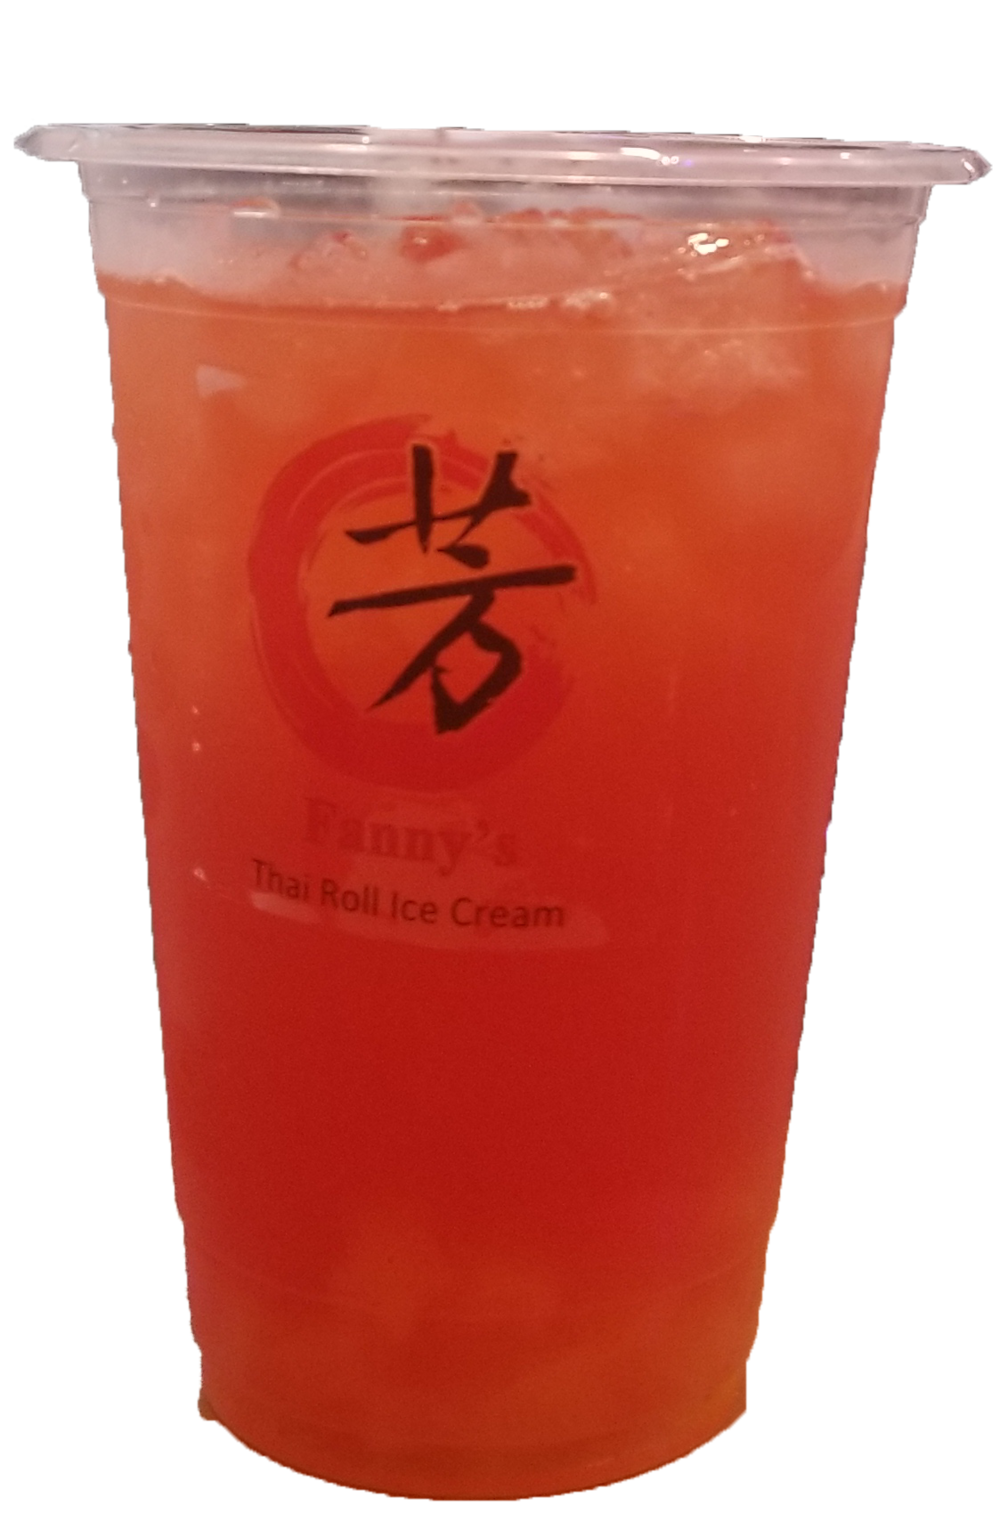 Strawberry and Mango flavor green tea with Passion Fruit, Mango and Strawberry Jelly